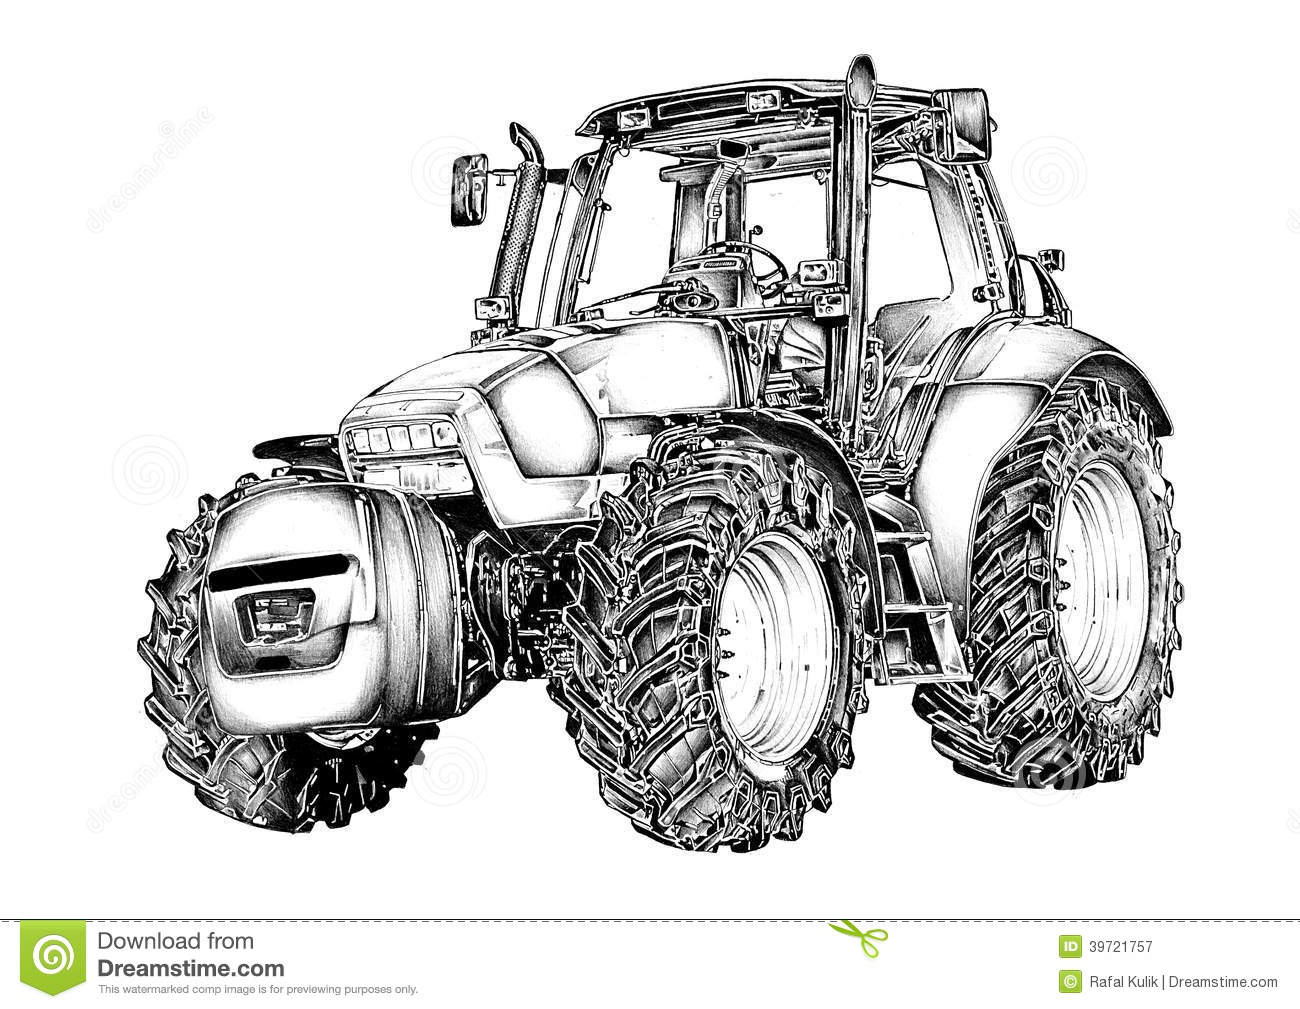 Royalty Free Stock Photography Agricultural Tractor Illustration Art Drawing Image39721757